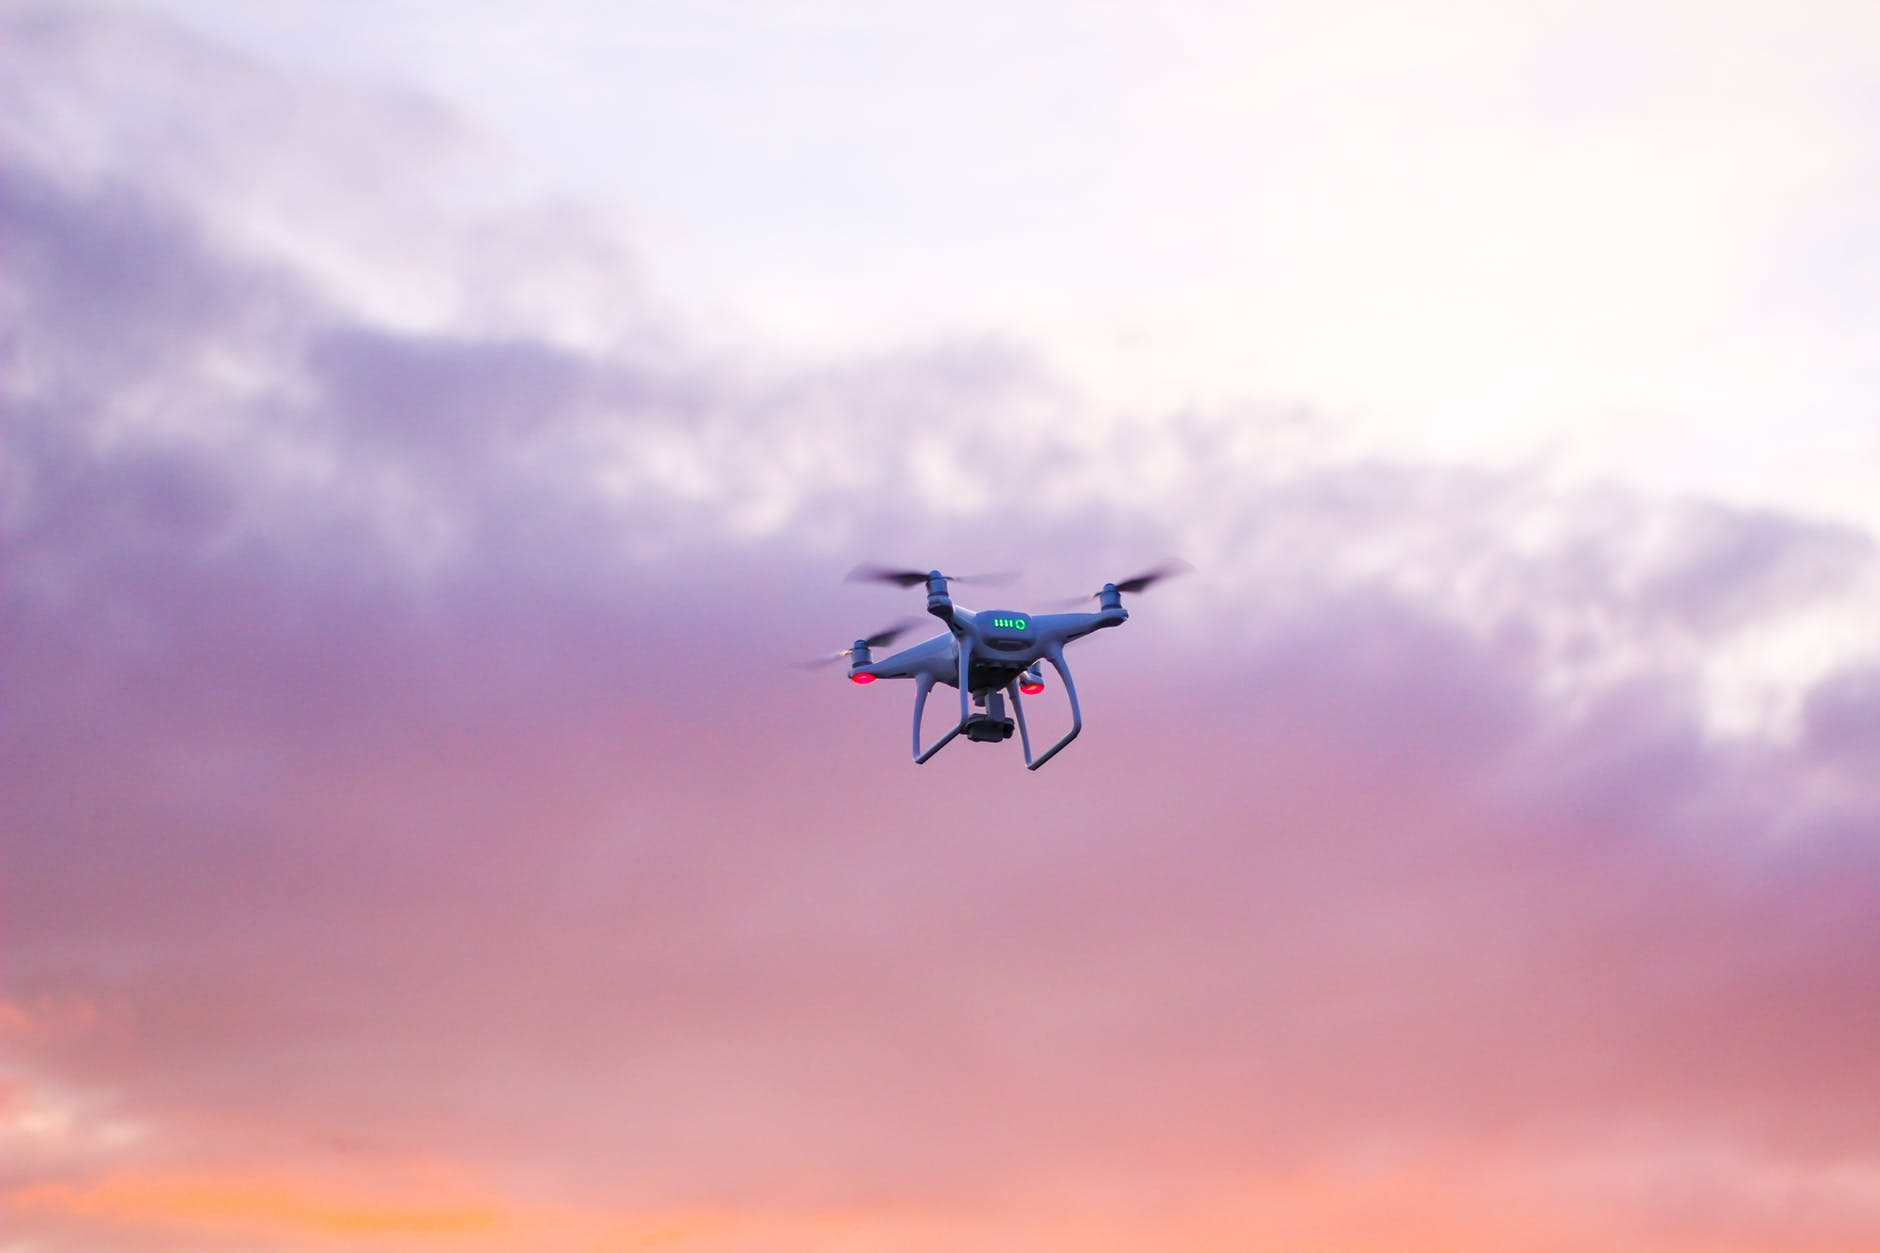 drone mid-air against the purple and orange clouds